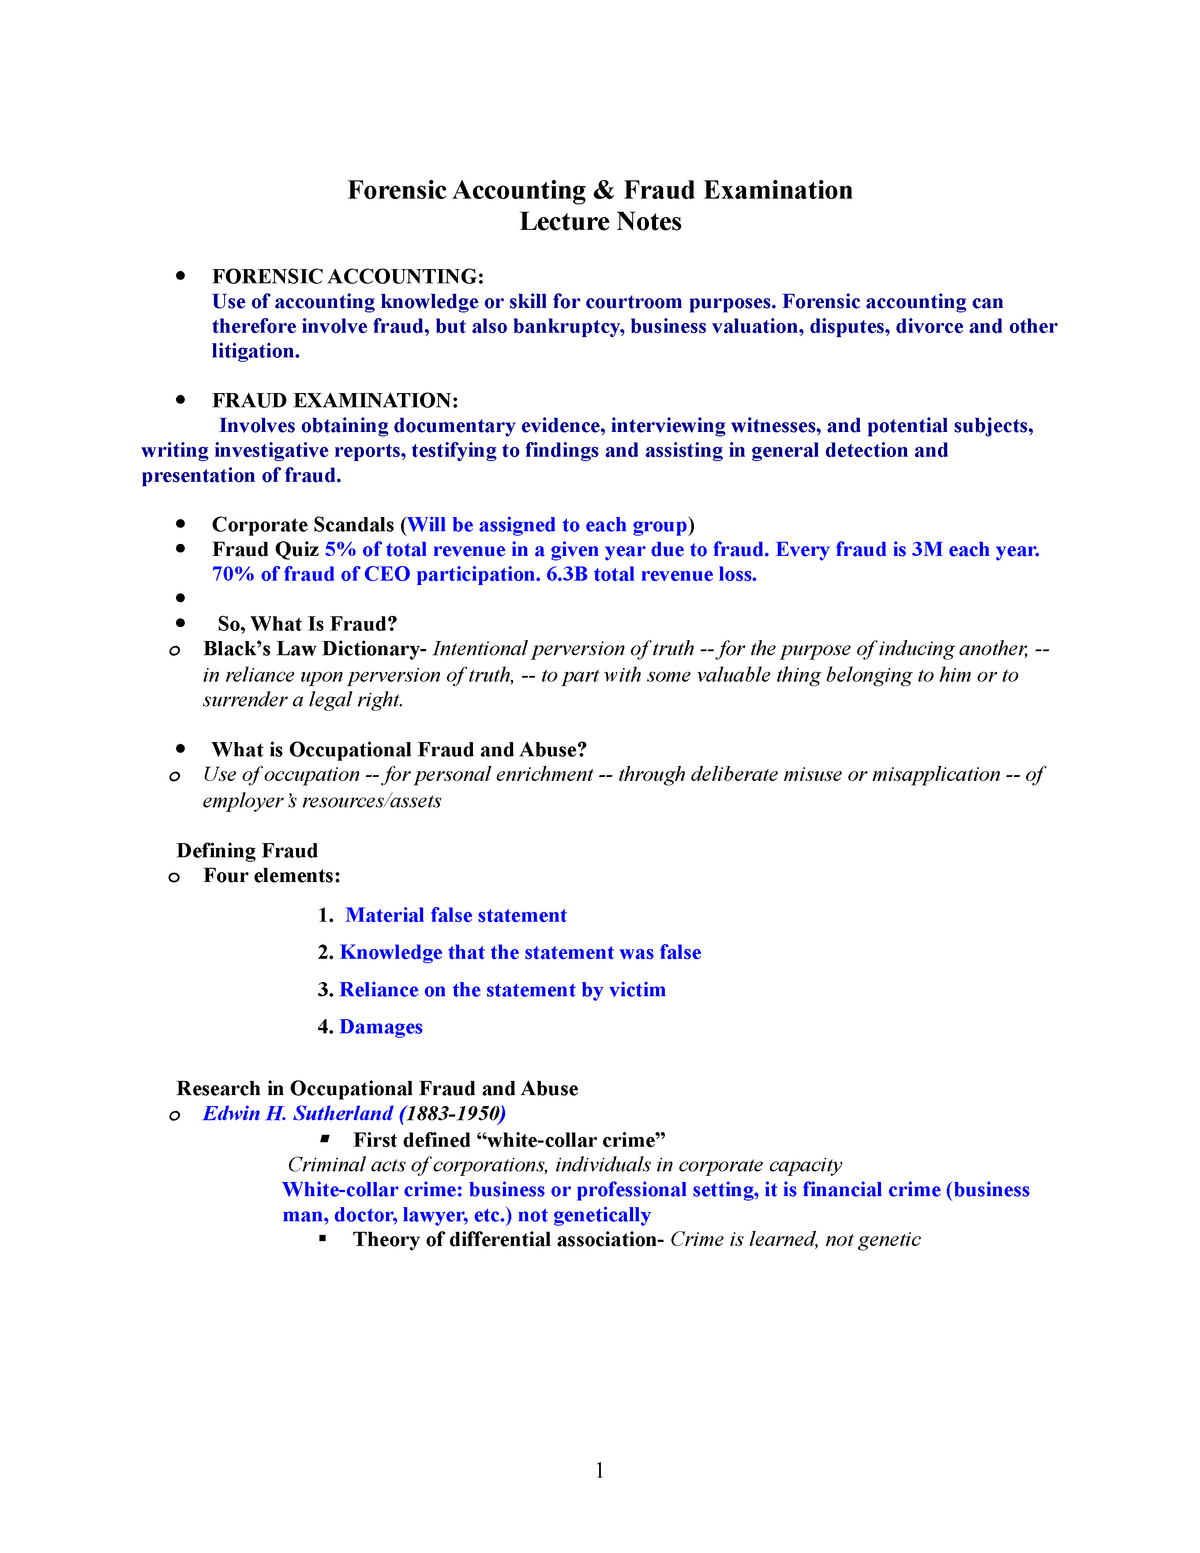 Lecture 1 notes 2019 - ACCT 8710 Forensic Accounting - StuDocu